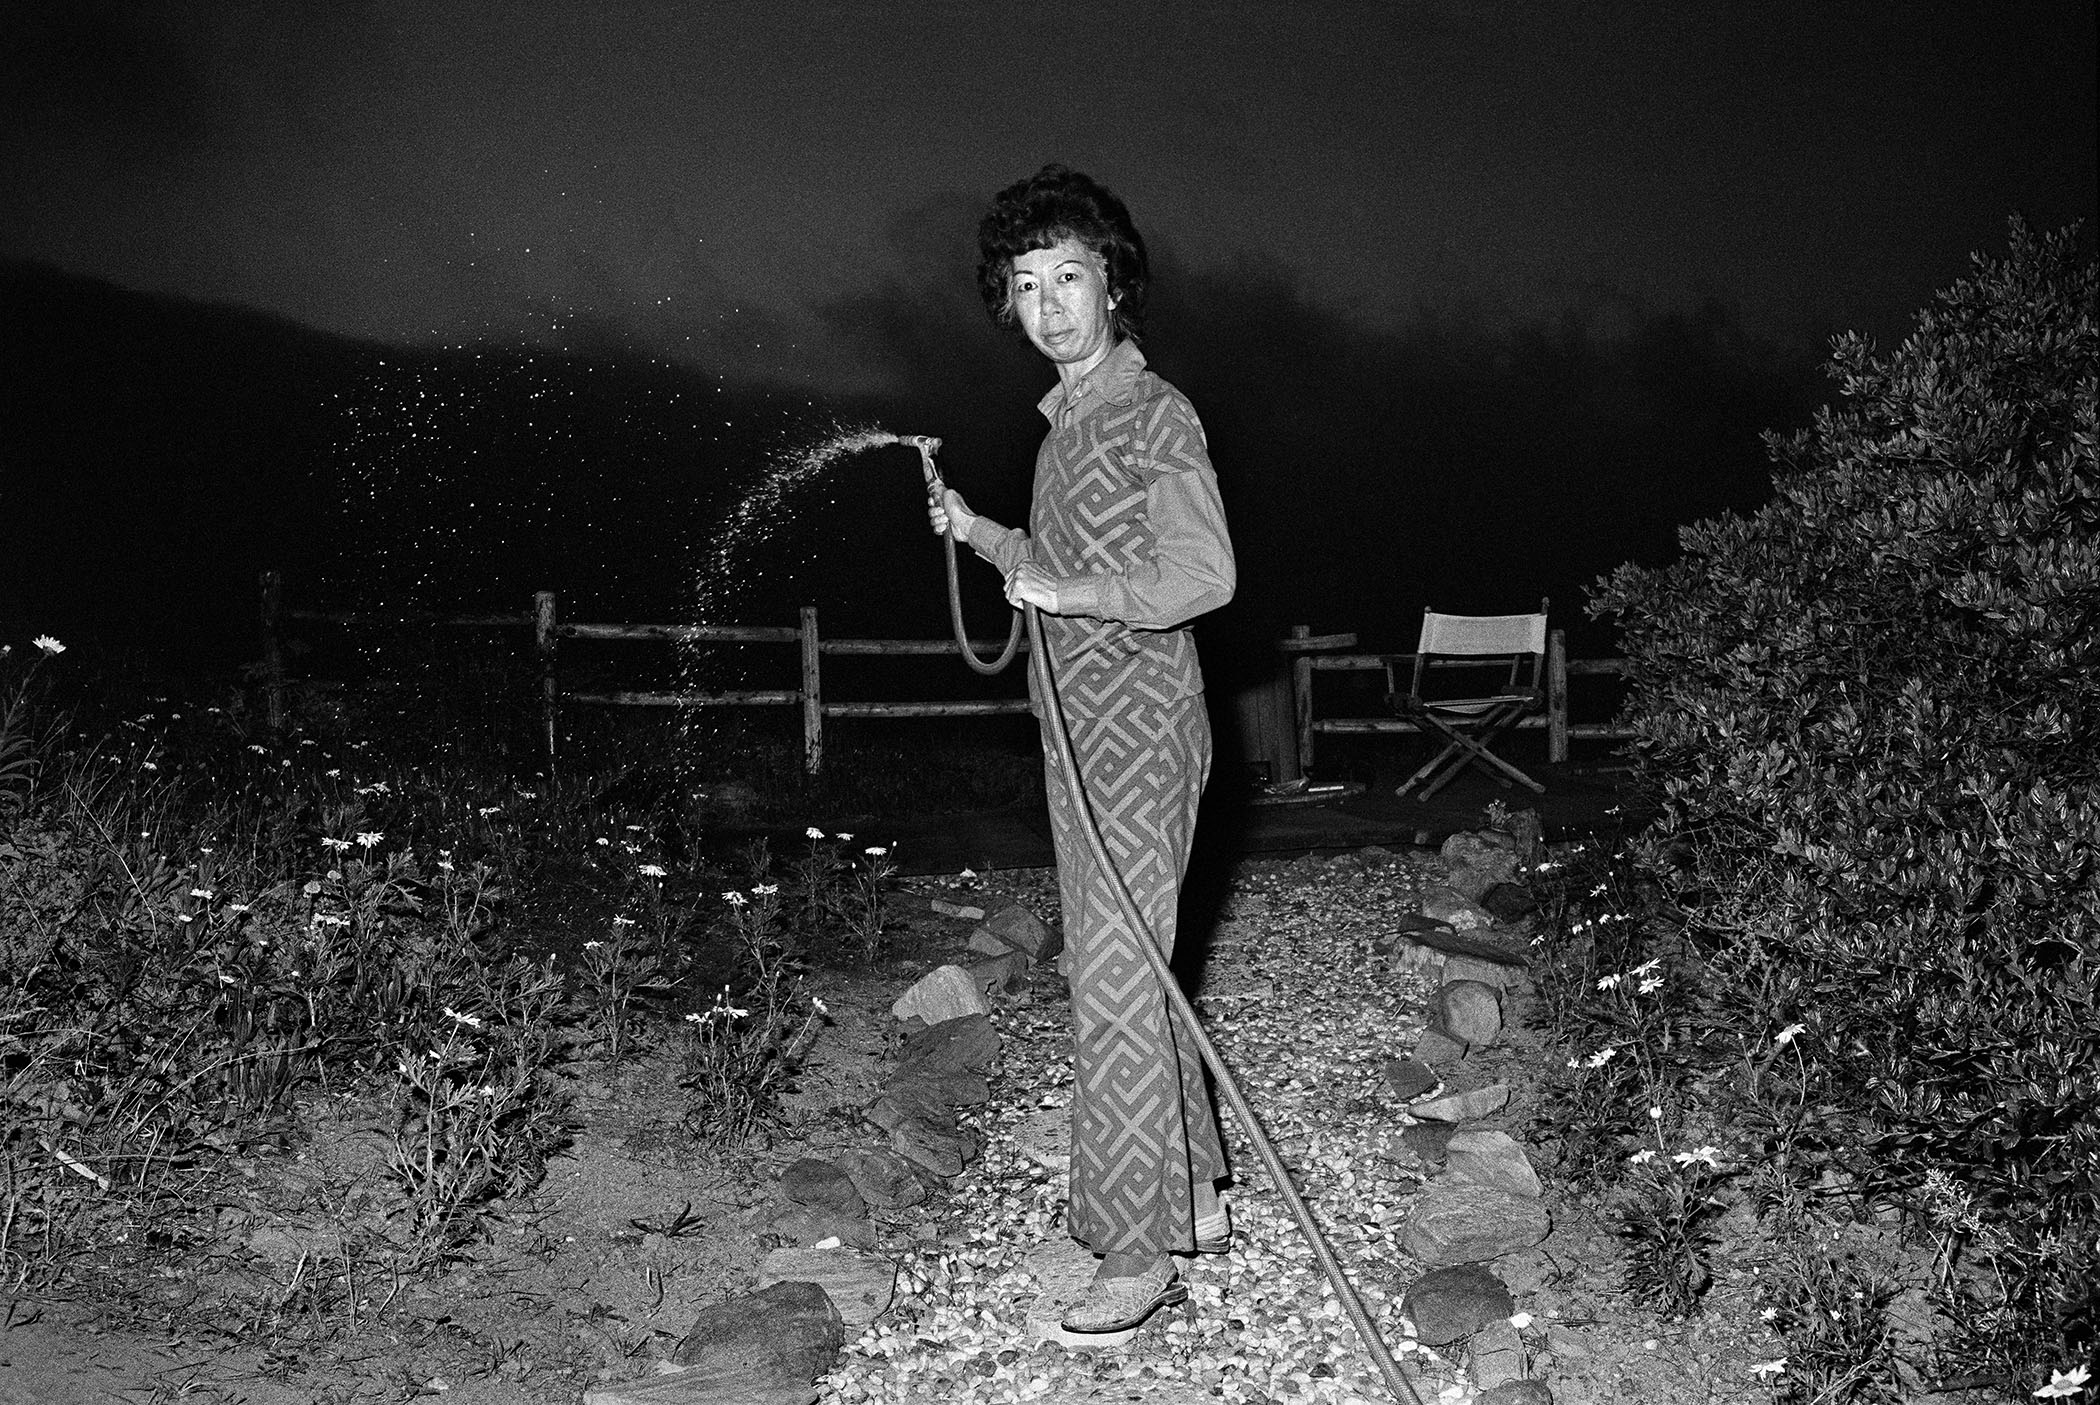 LUCY WATERING AT NIGHT, 1973 © Michael Jang